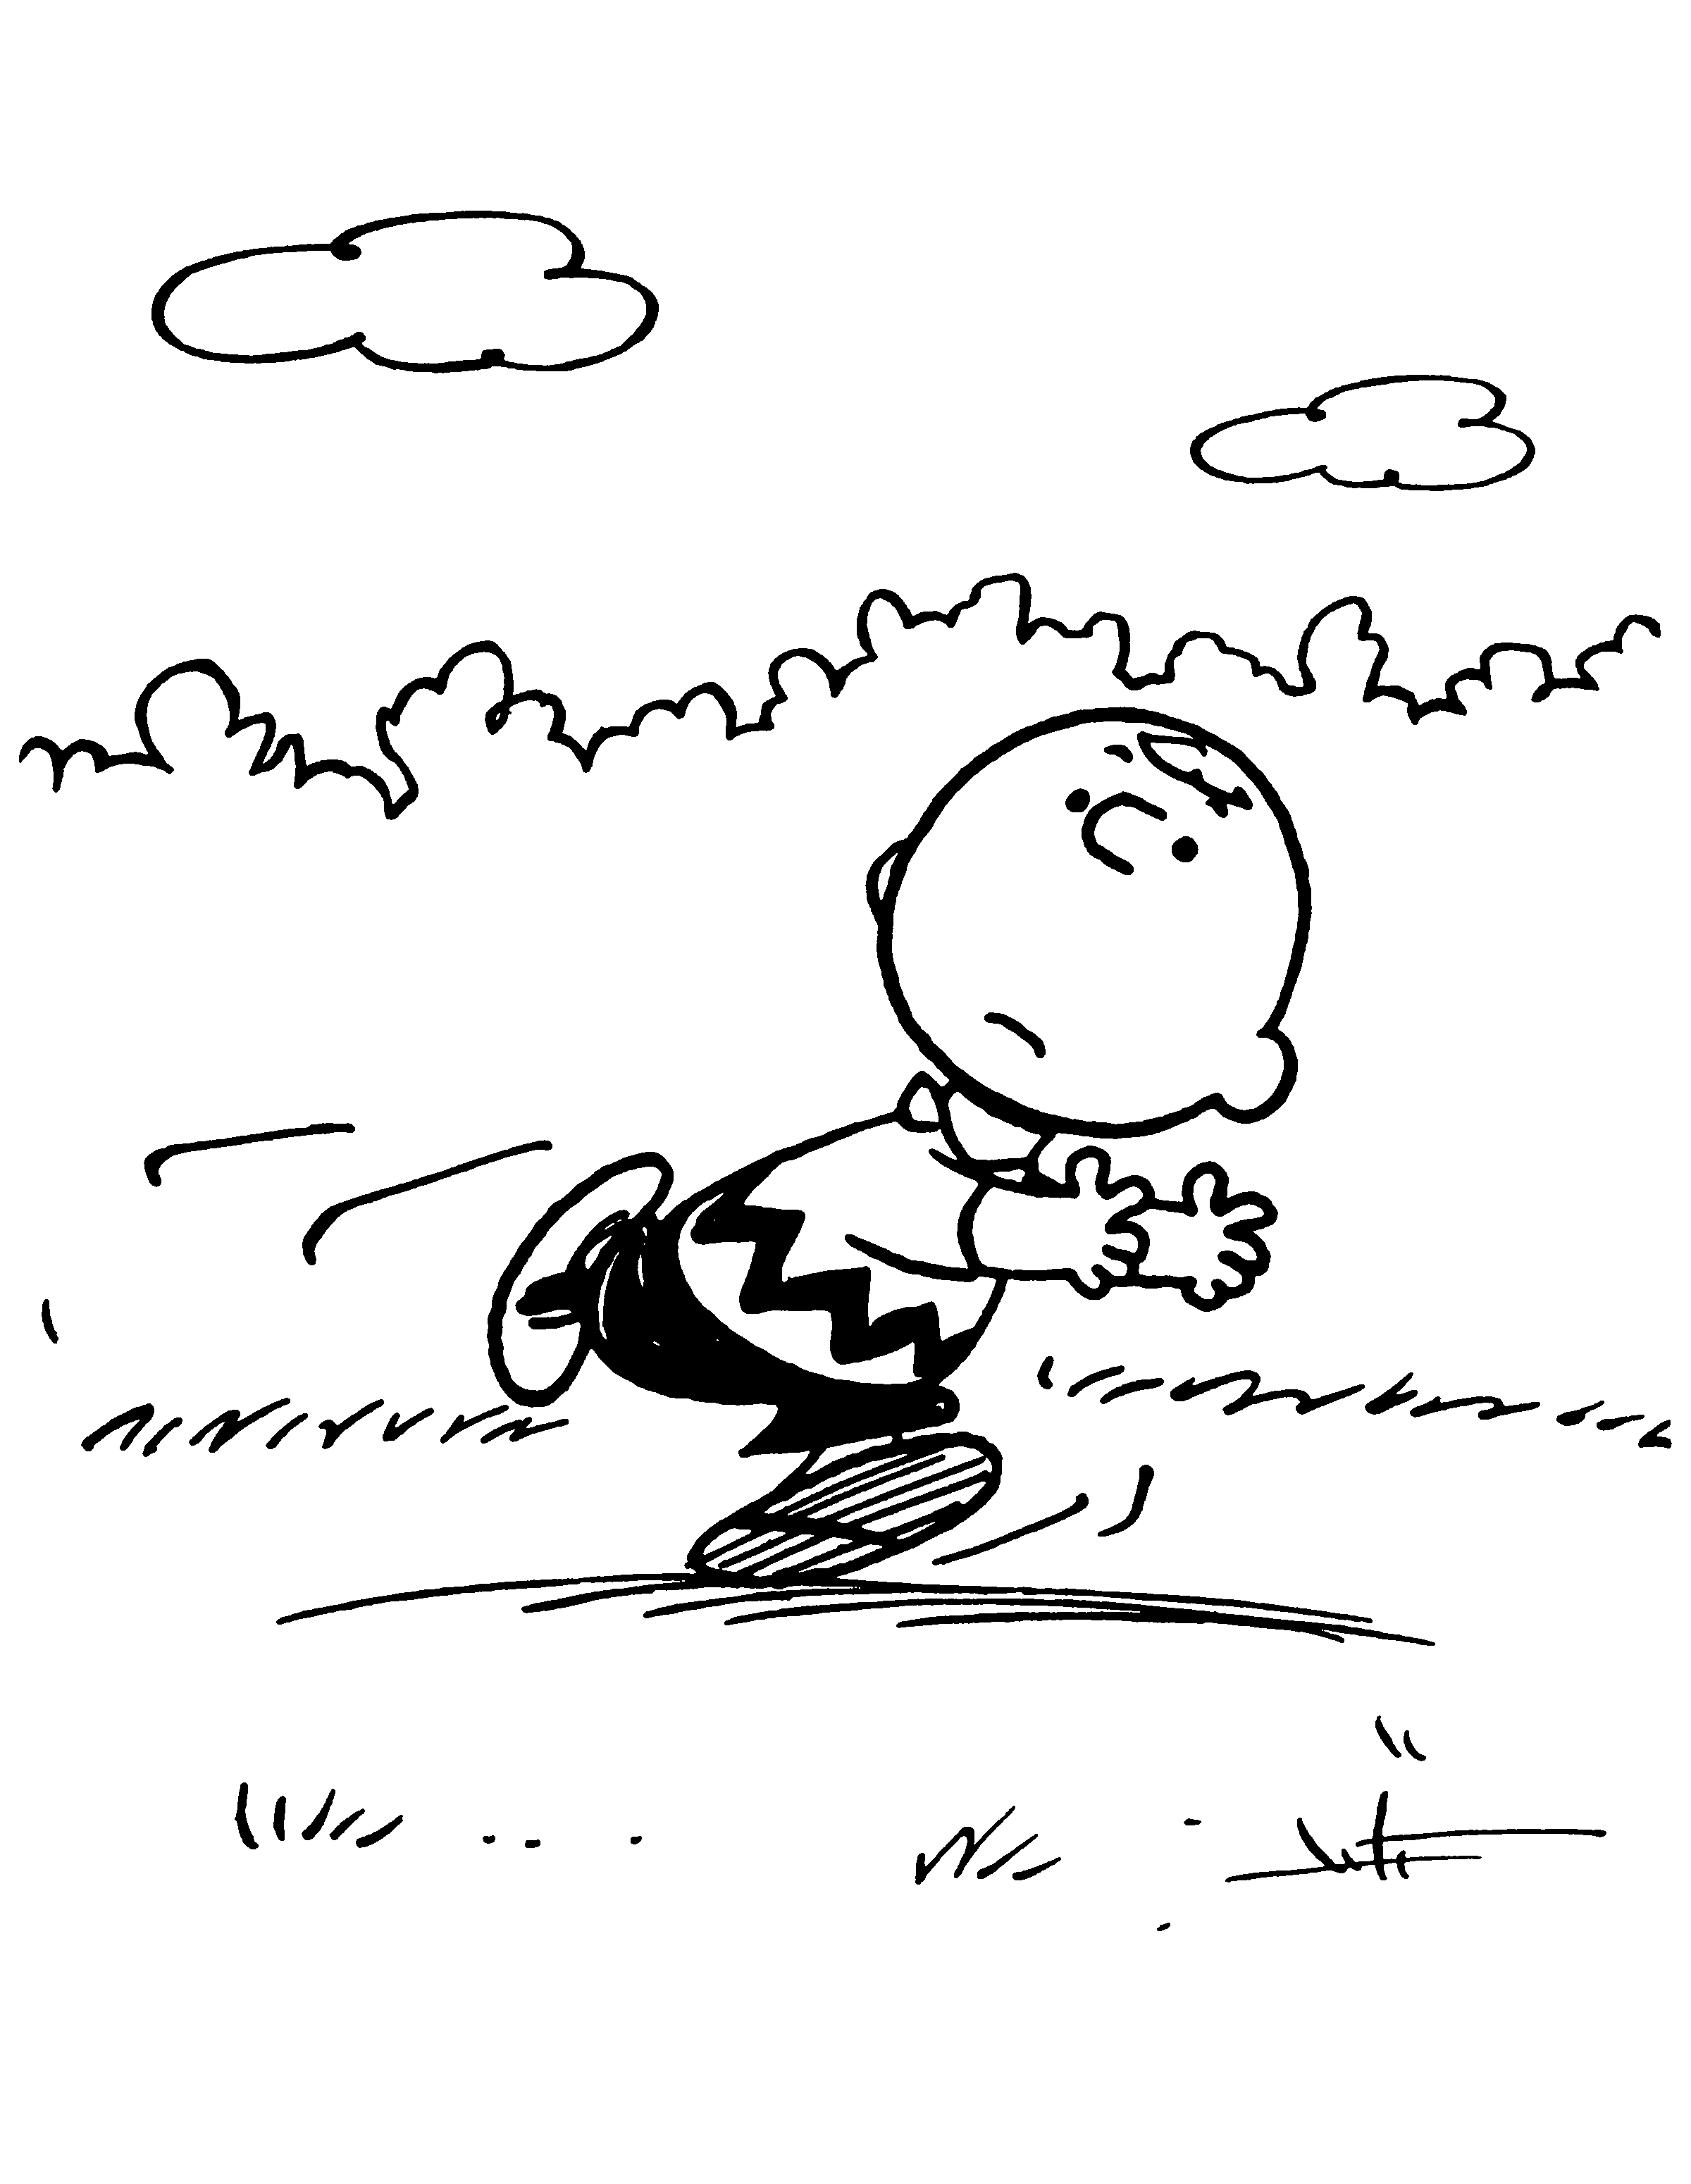 Coloring pictures charlie brown characters - Charlie Brown Coloring Sheet